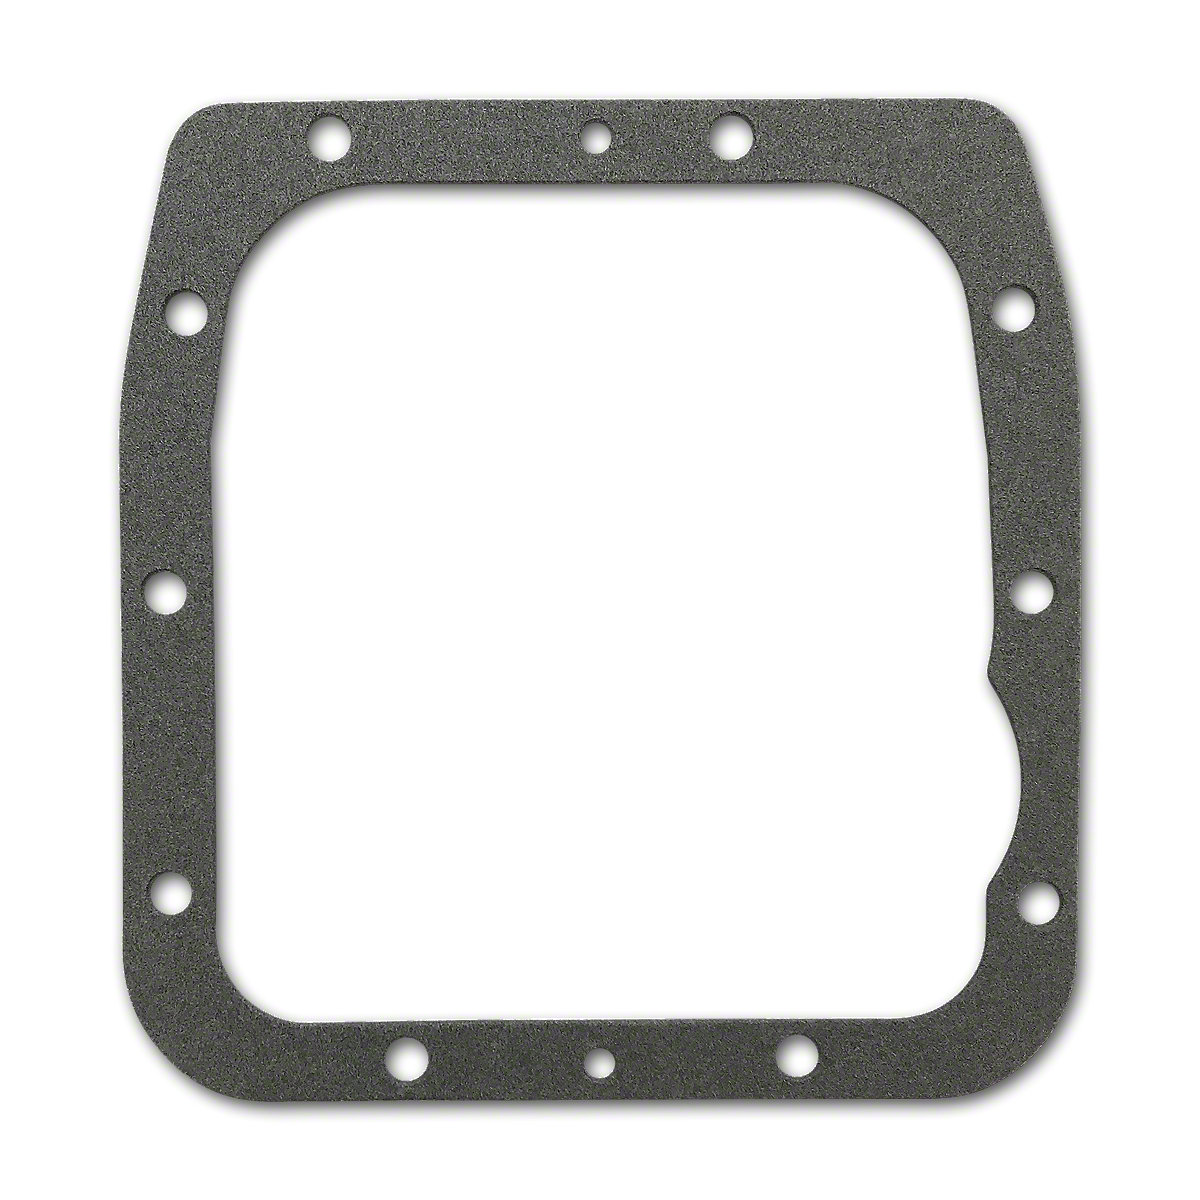 FDS3996 Transmission Gear Shift Cover Plate Gasket (5 speed)